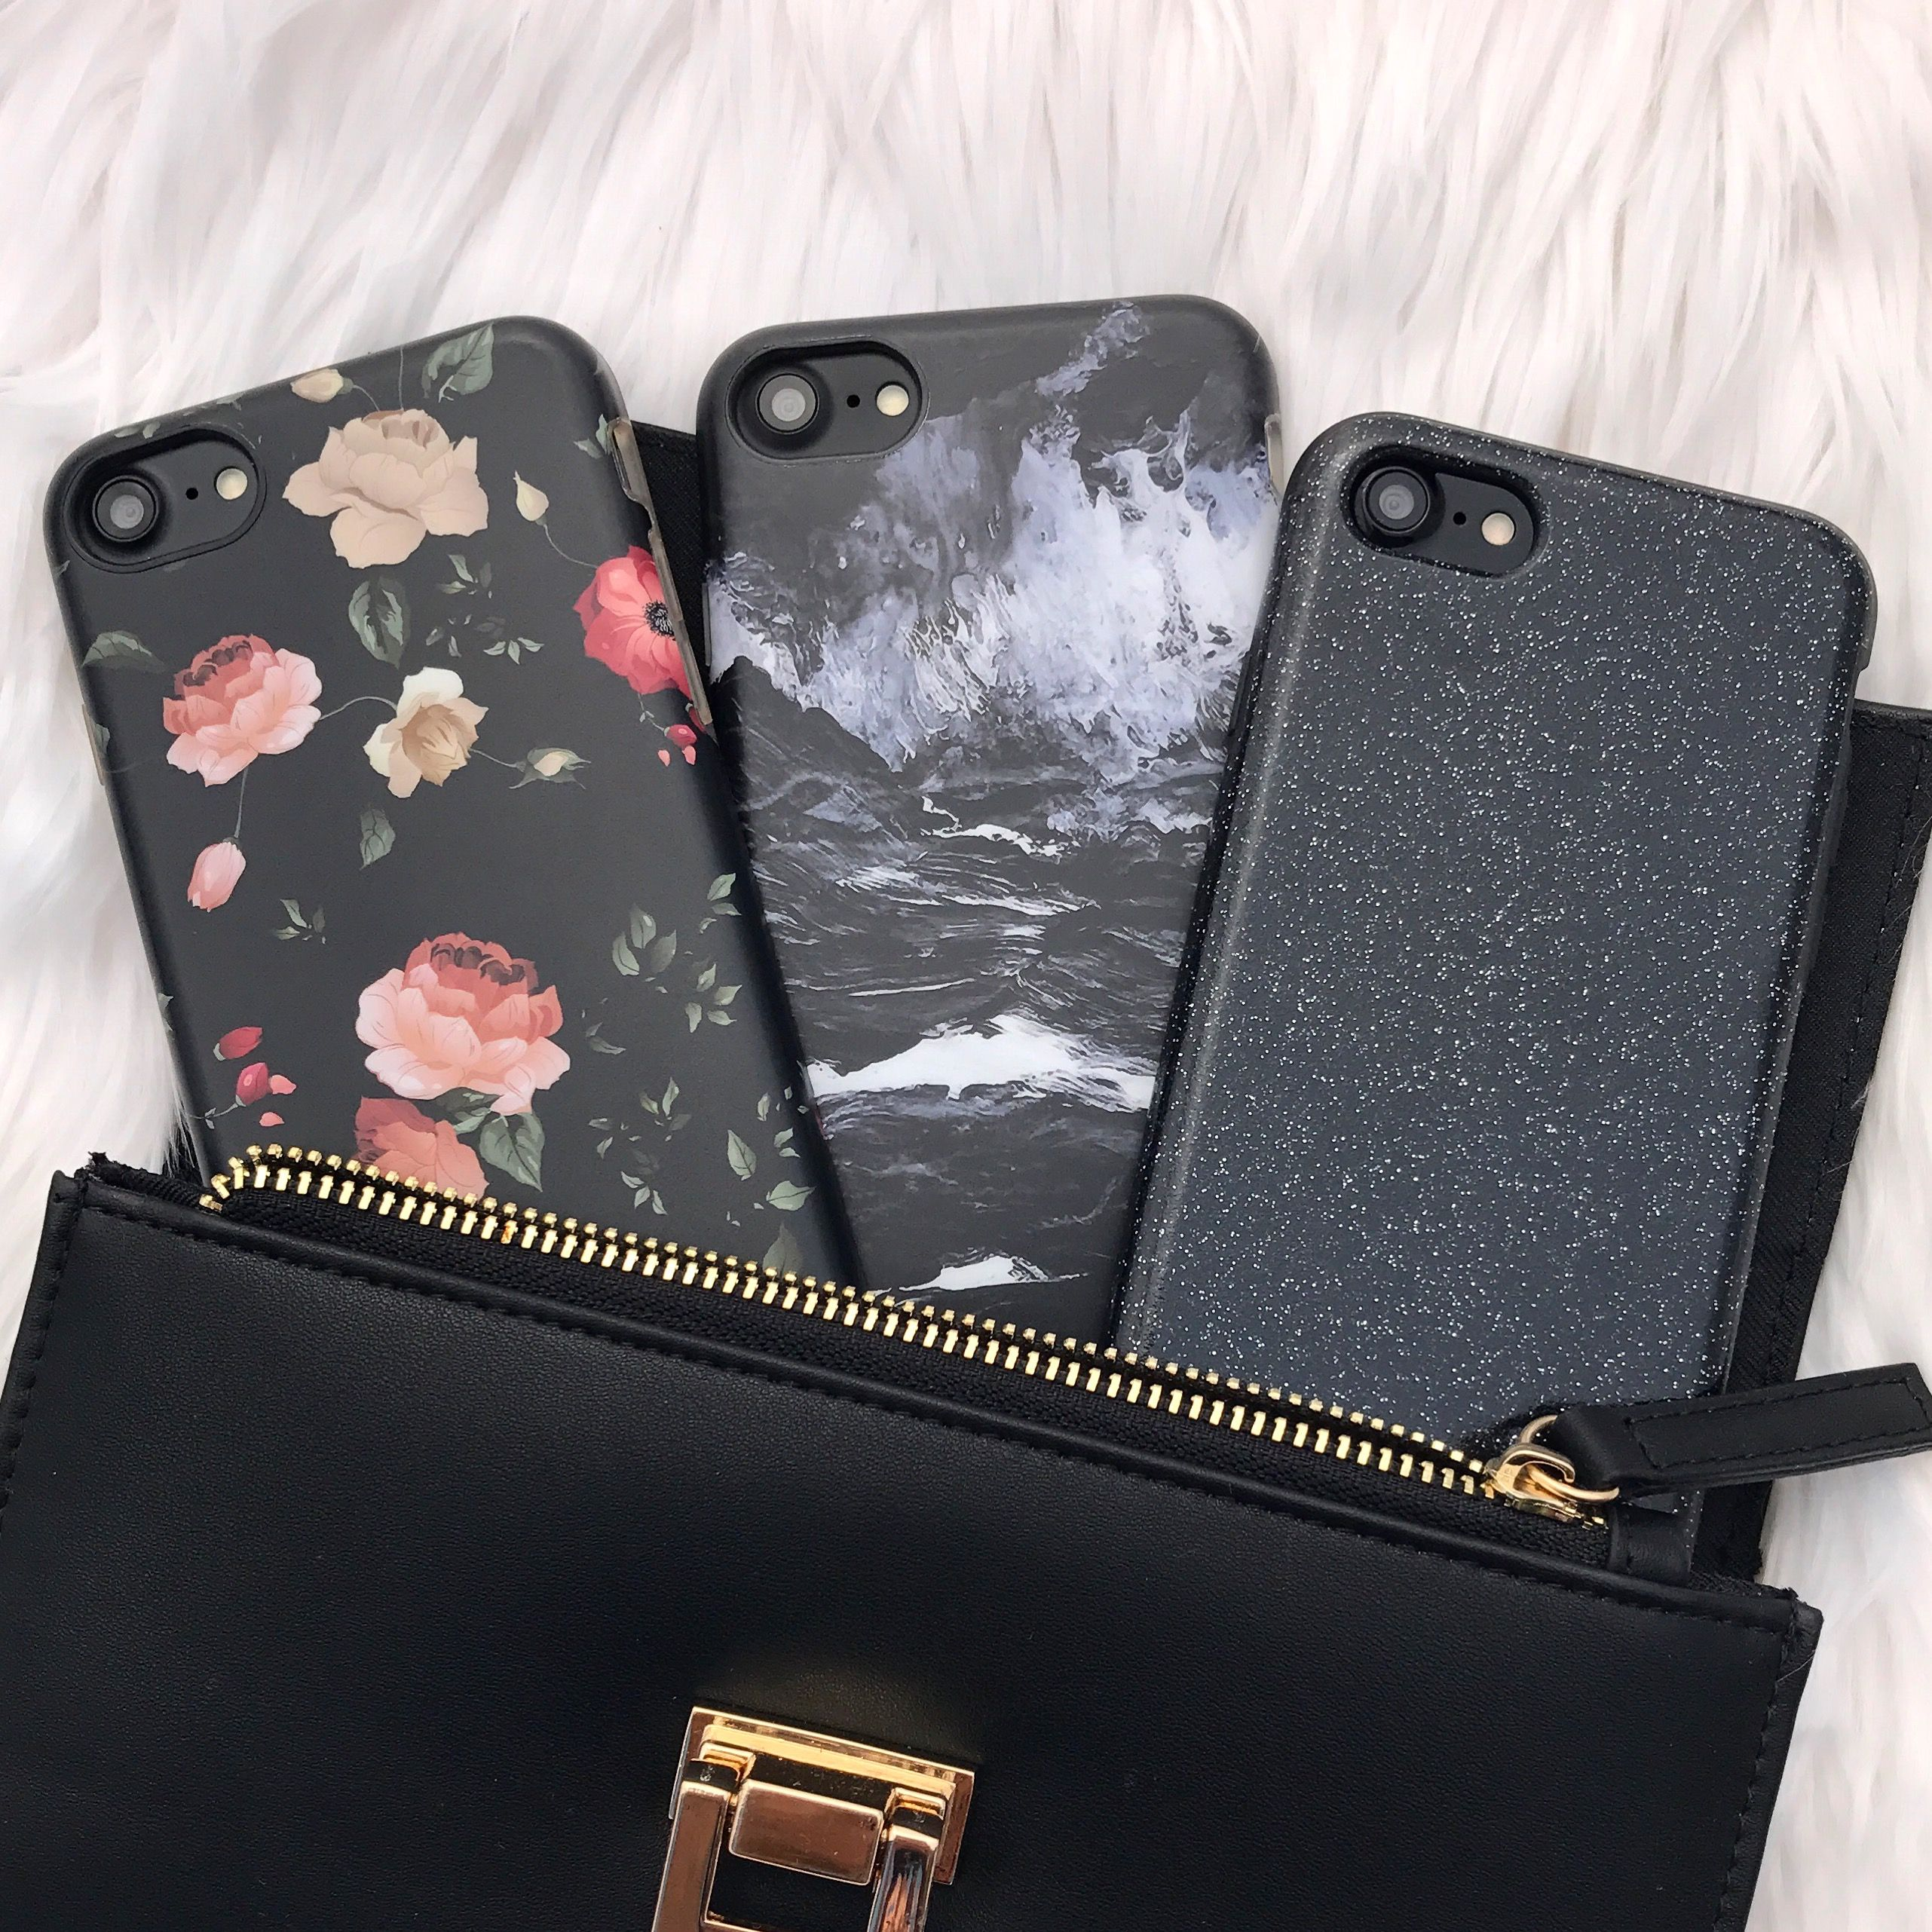 All black with the Dark Rose + Black Marble + Black Glam Case for iPhone 7 & iPhone 7 Plus from Elemental Cases